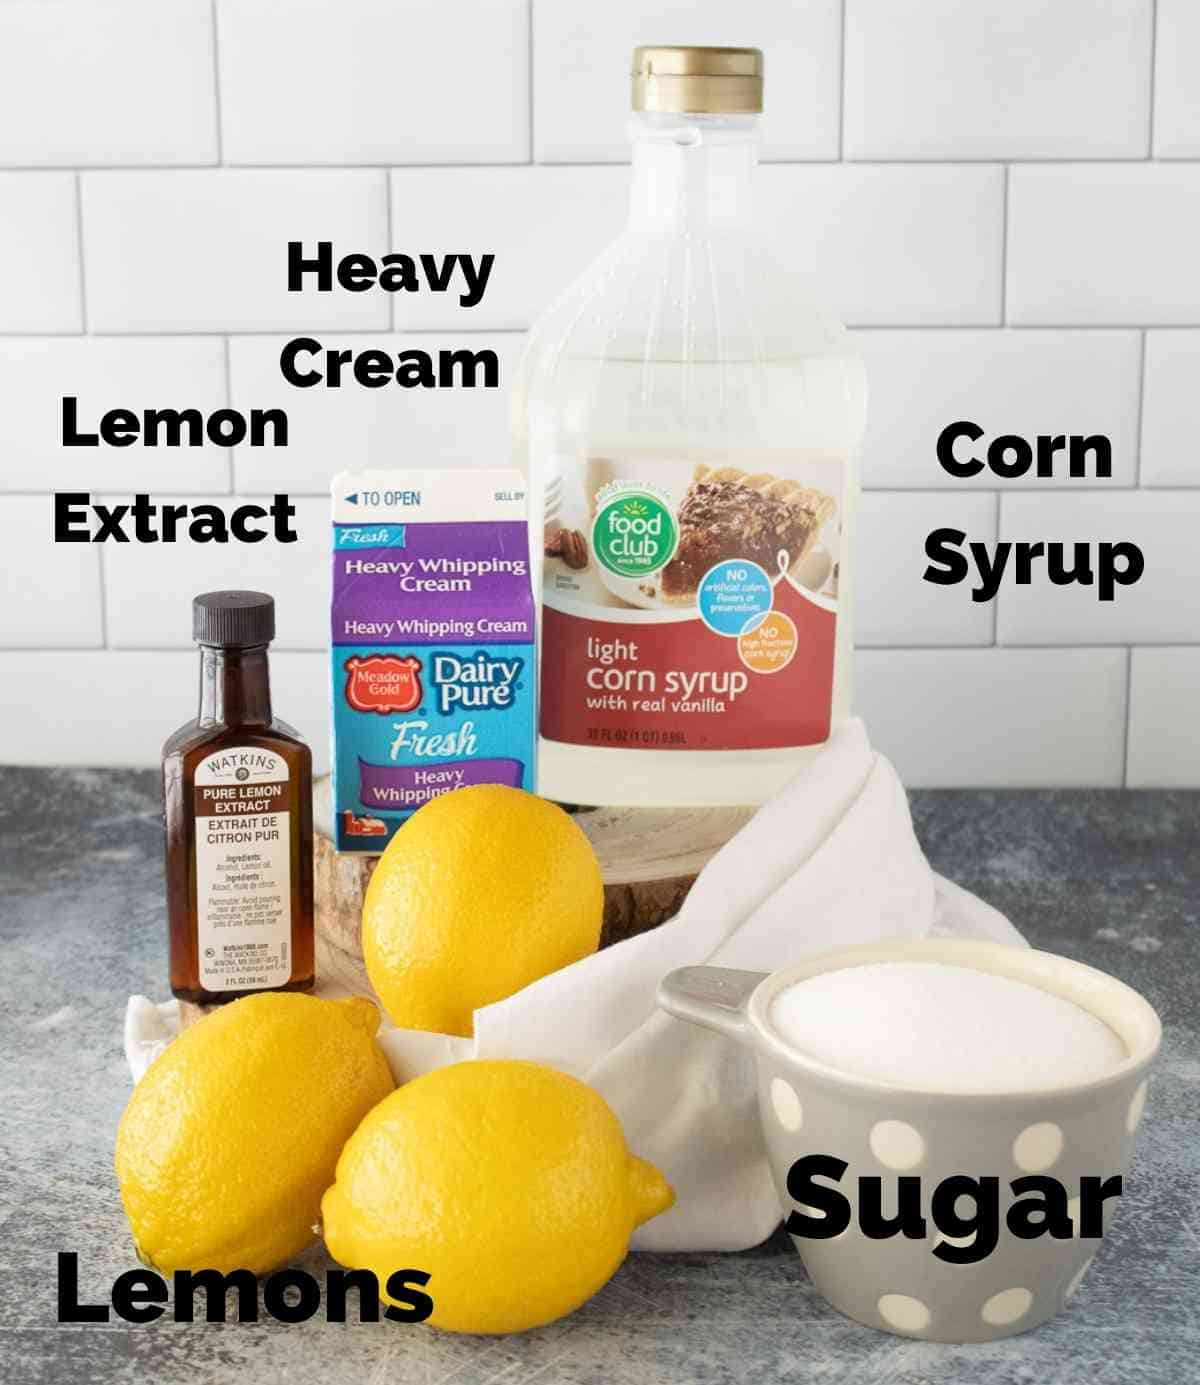 Ingredients for lemon cream syrup